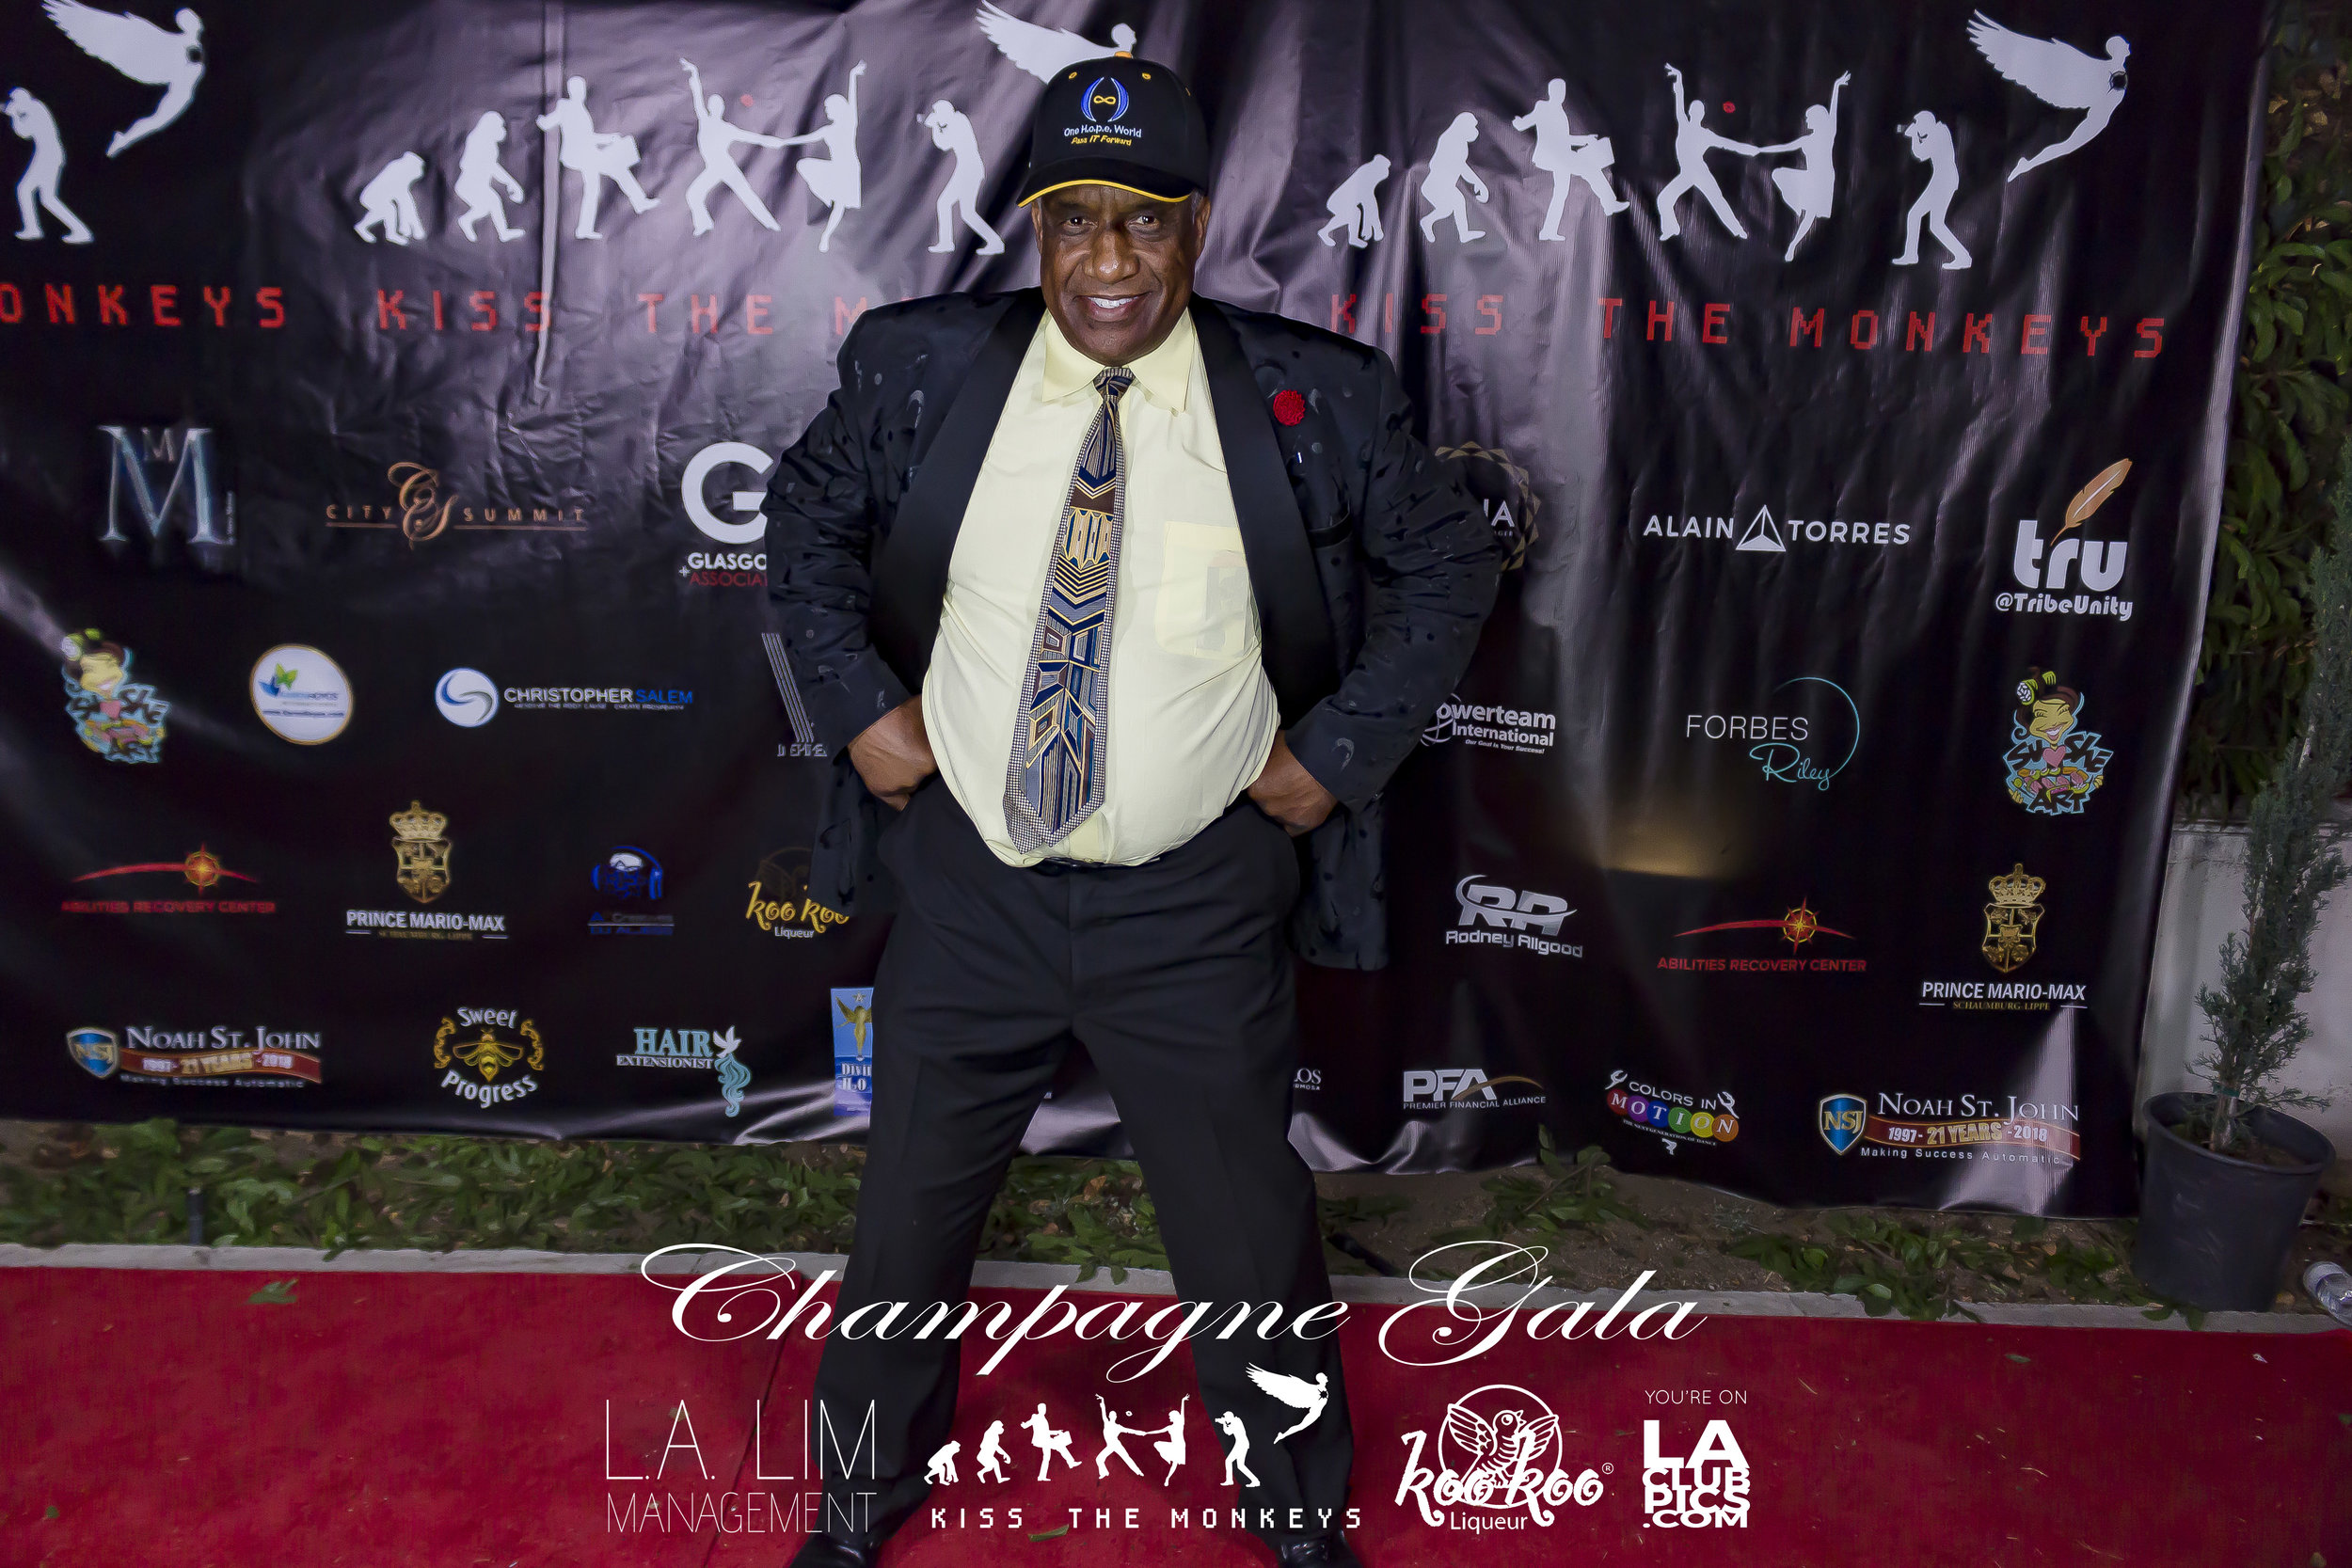 Kiss The Monkeys - Champagne Gala - 07-21-18_67.jpg